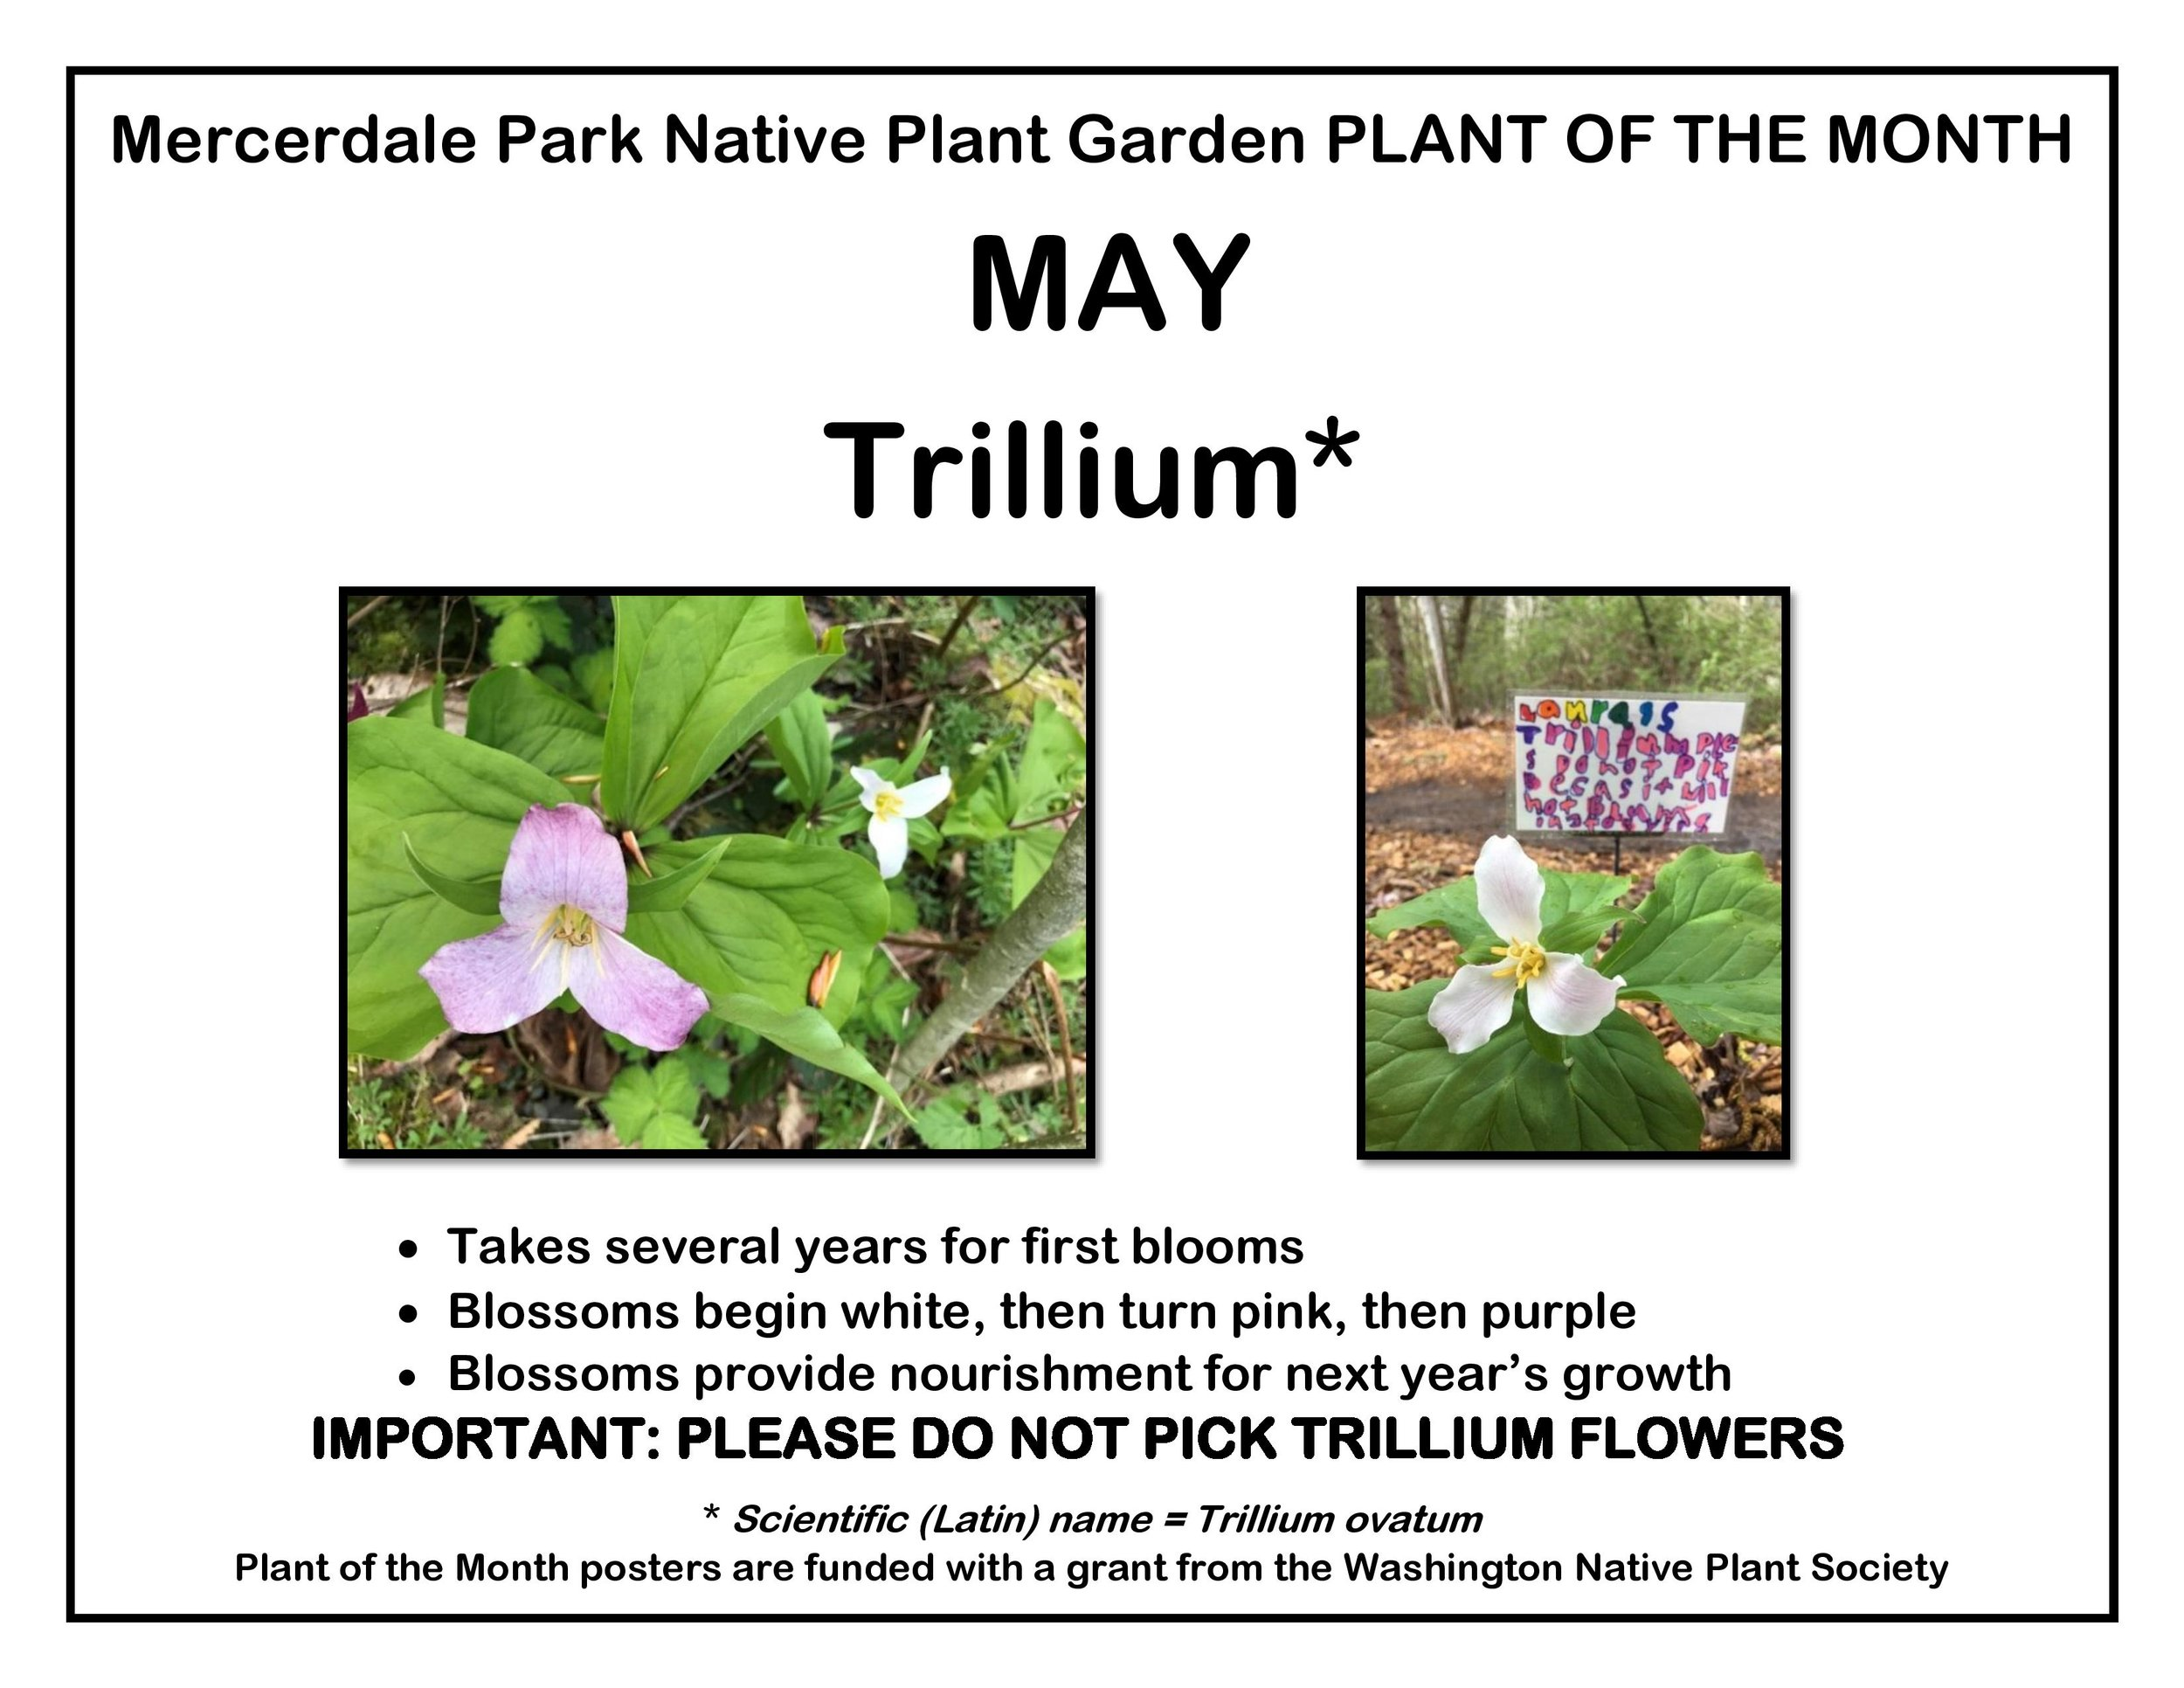 p PLANT OF THE MONTH 5 May trillium website-page-001.jpg